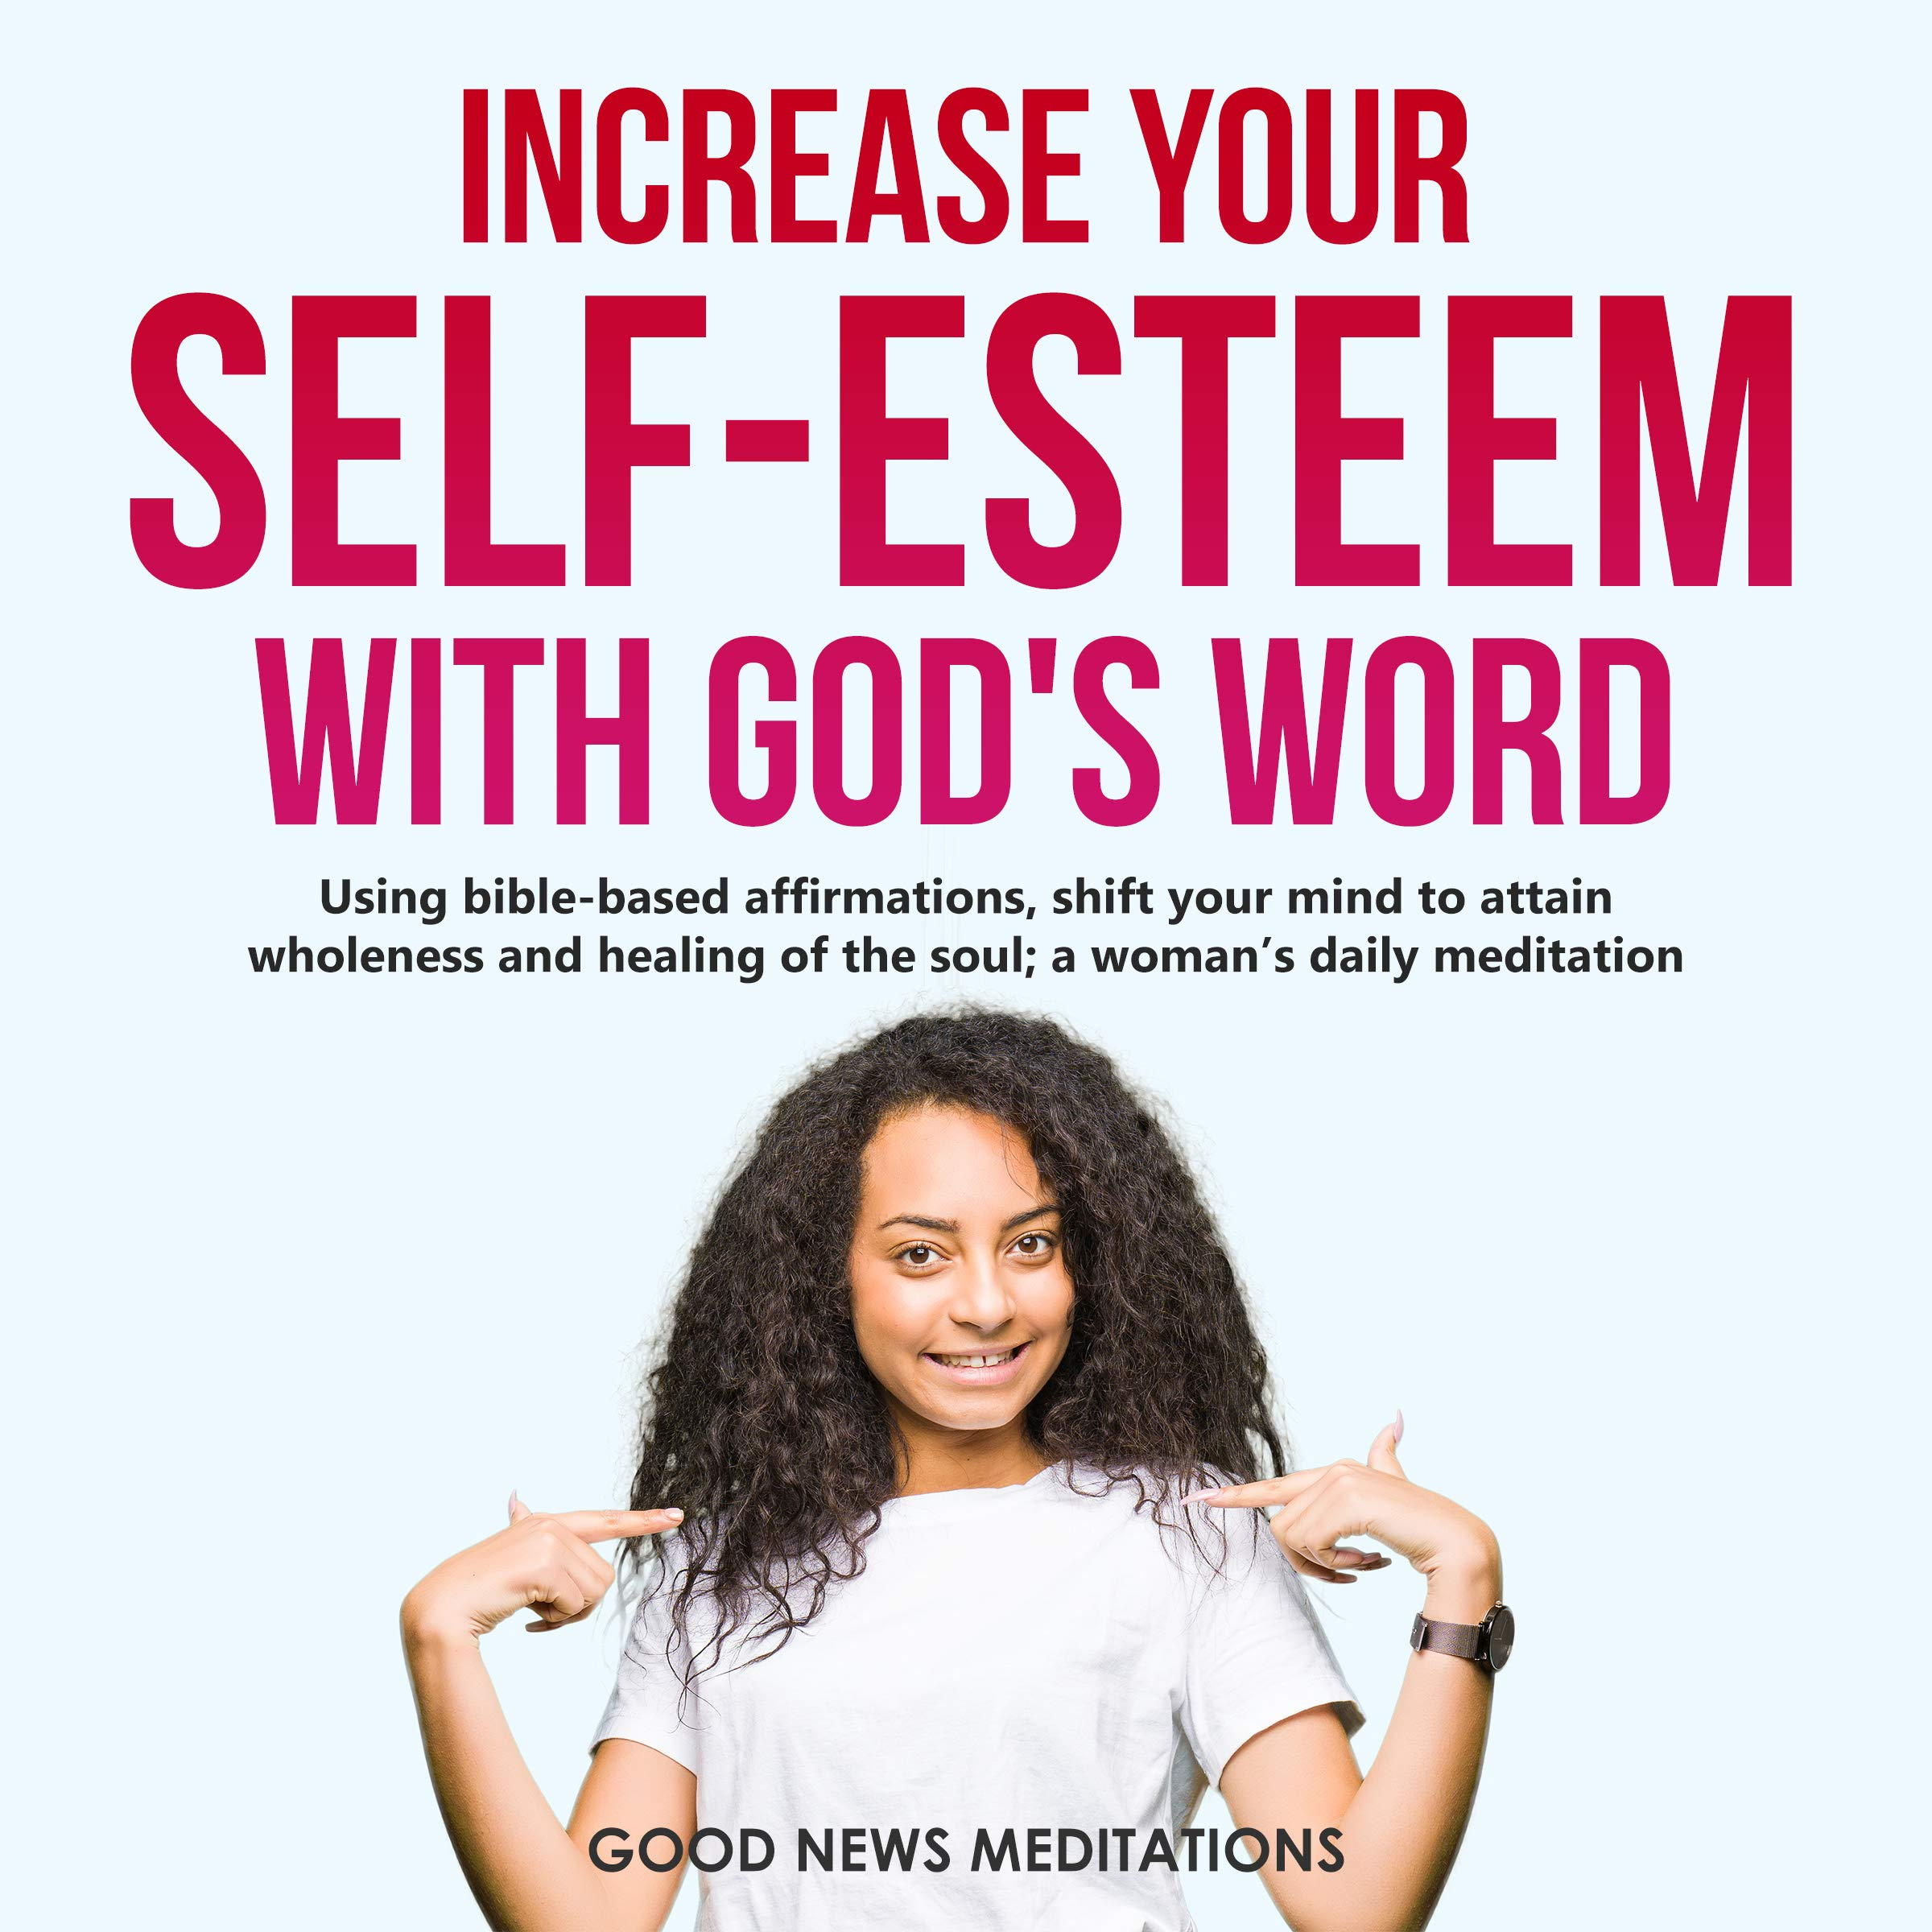 Increase your self-esteem with God's Word: Using bible-based affirmations, shift your mind to attain wholeness and healing of the soul; a woman's daily meditation